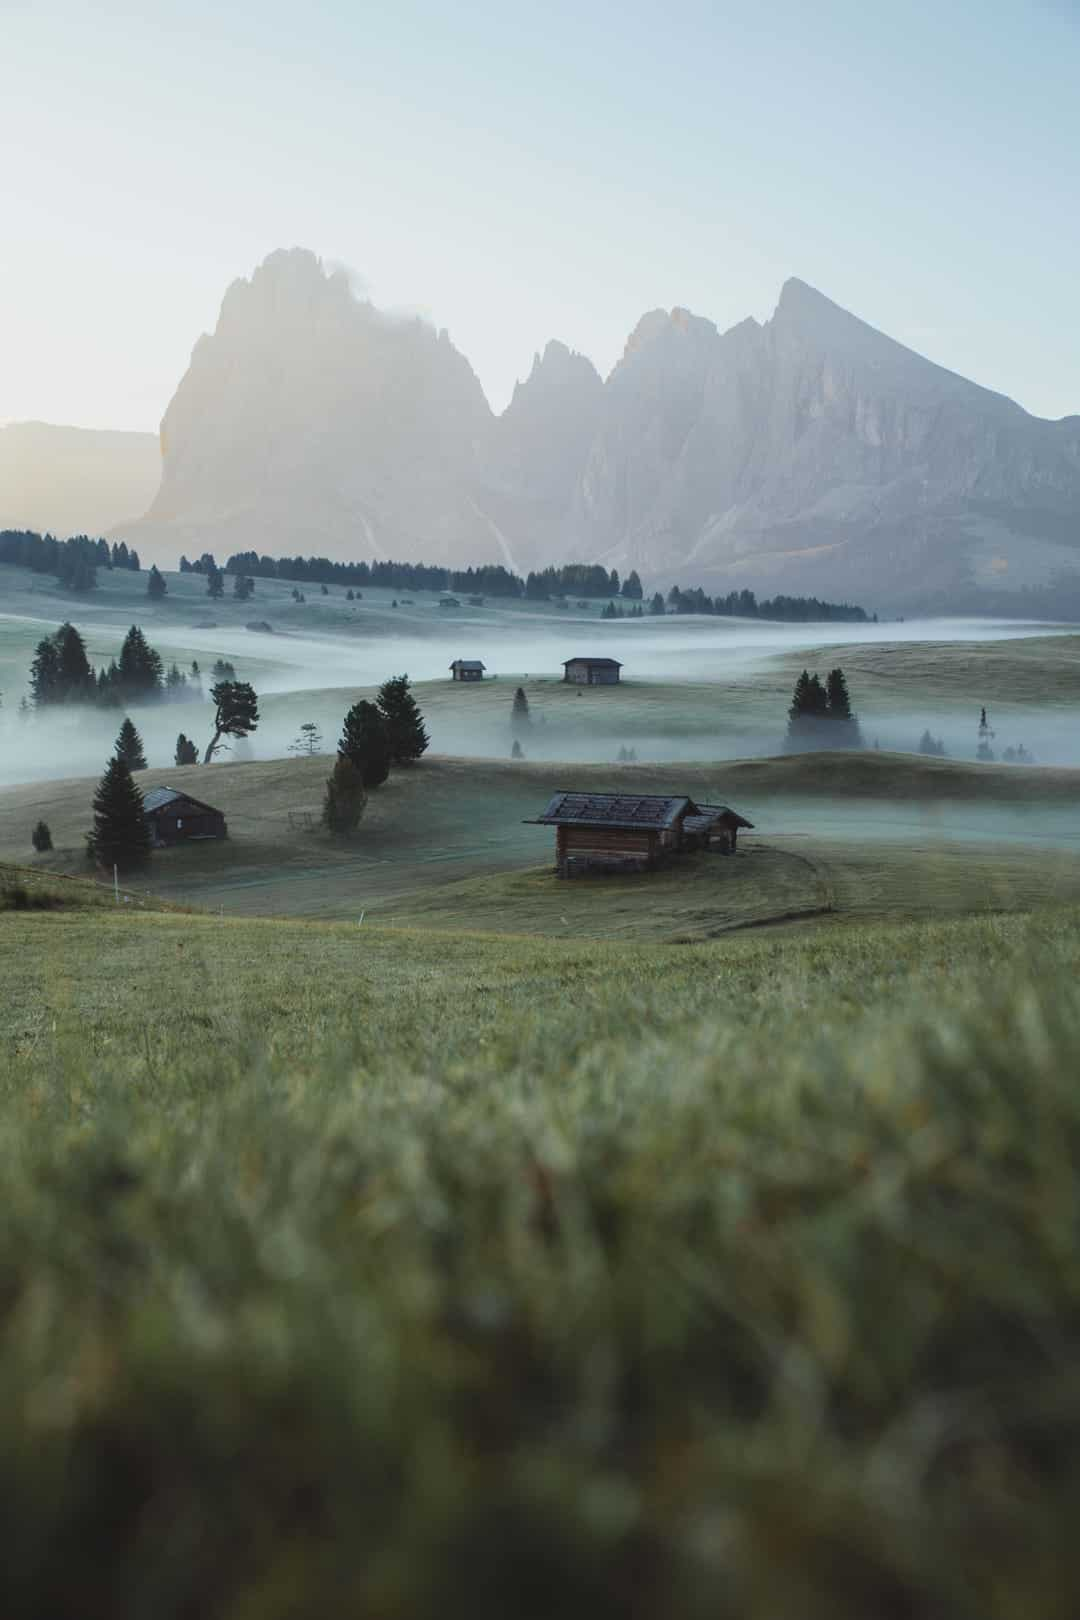 Fog hovering over grass between cabins and trees in front of a mountain